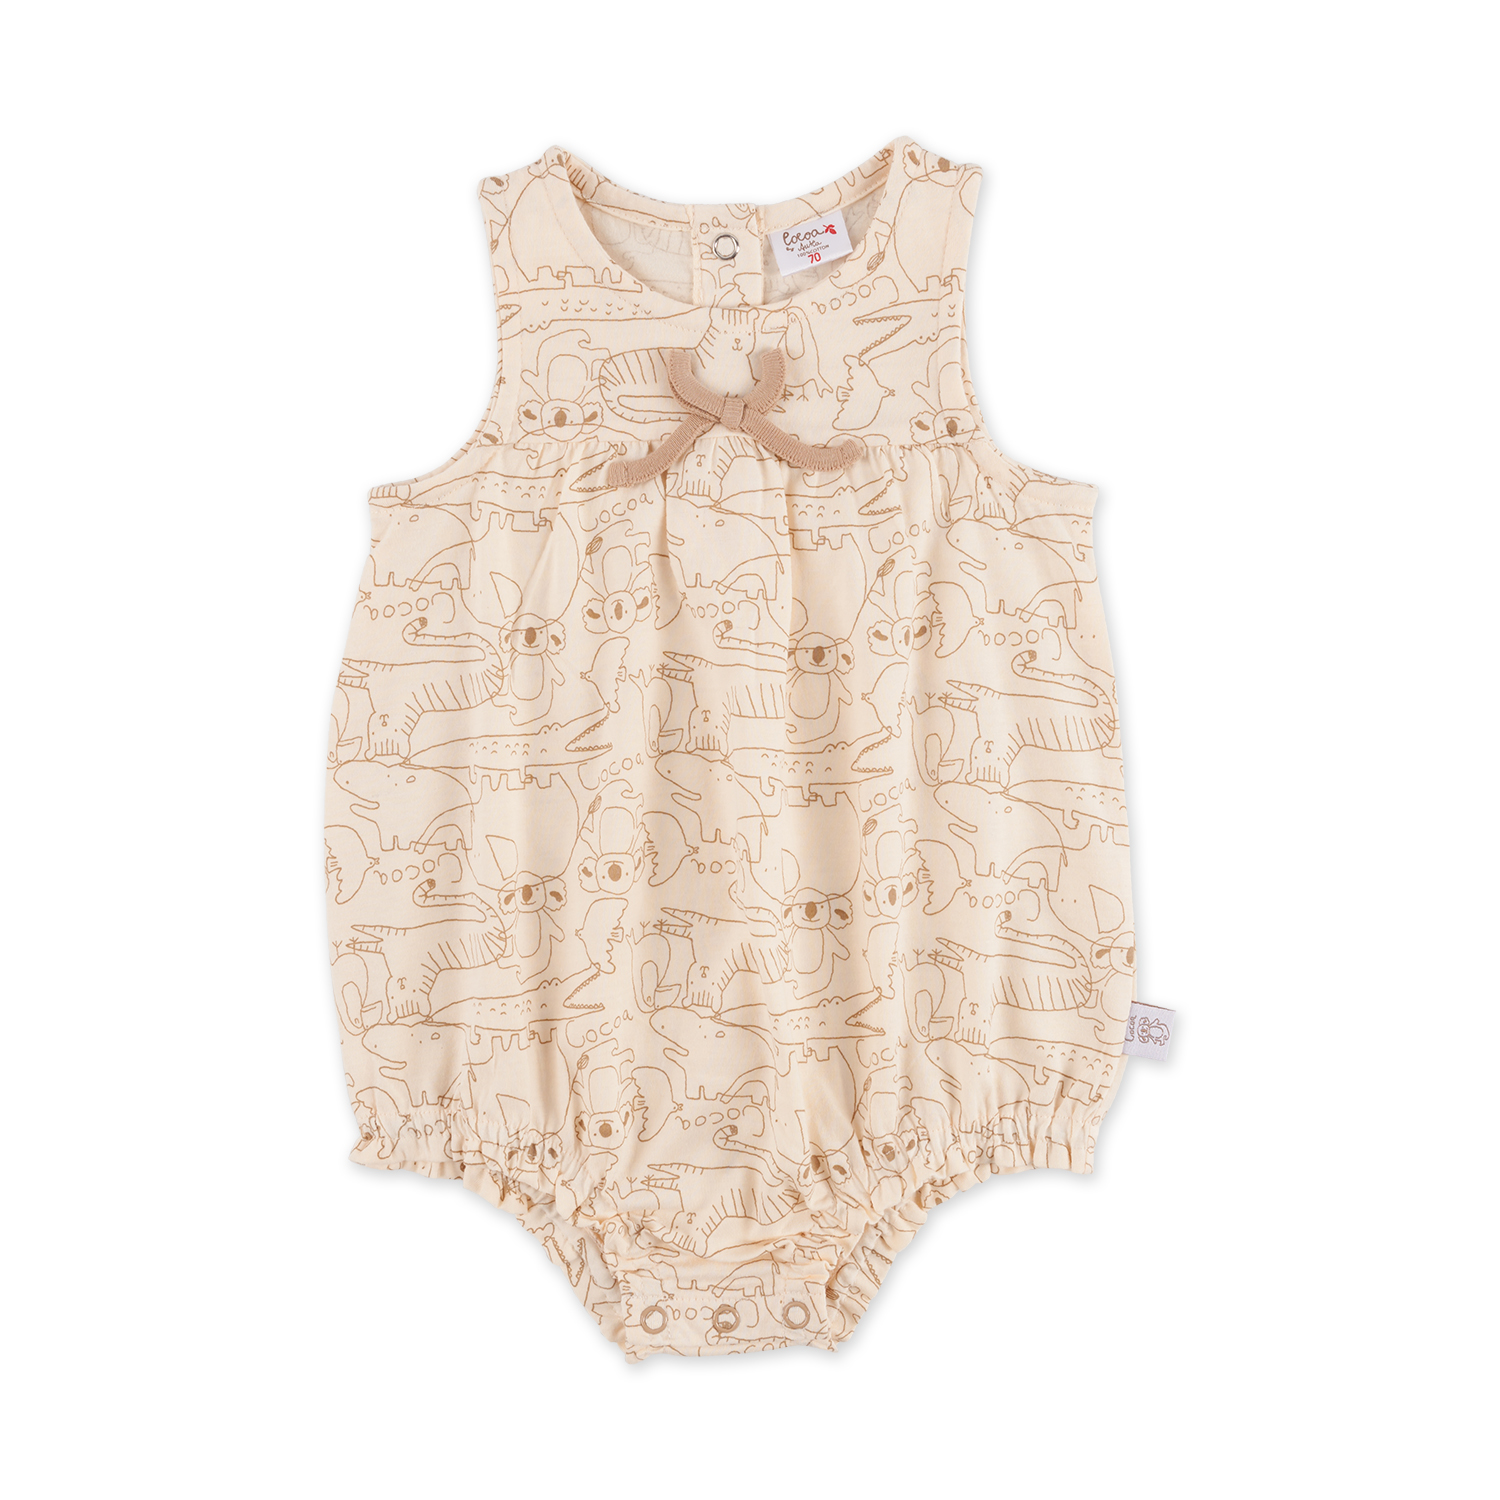 Auka Infant and Toddler Romper